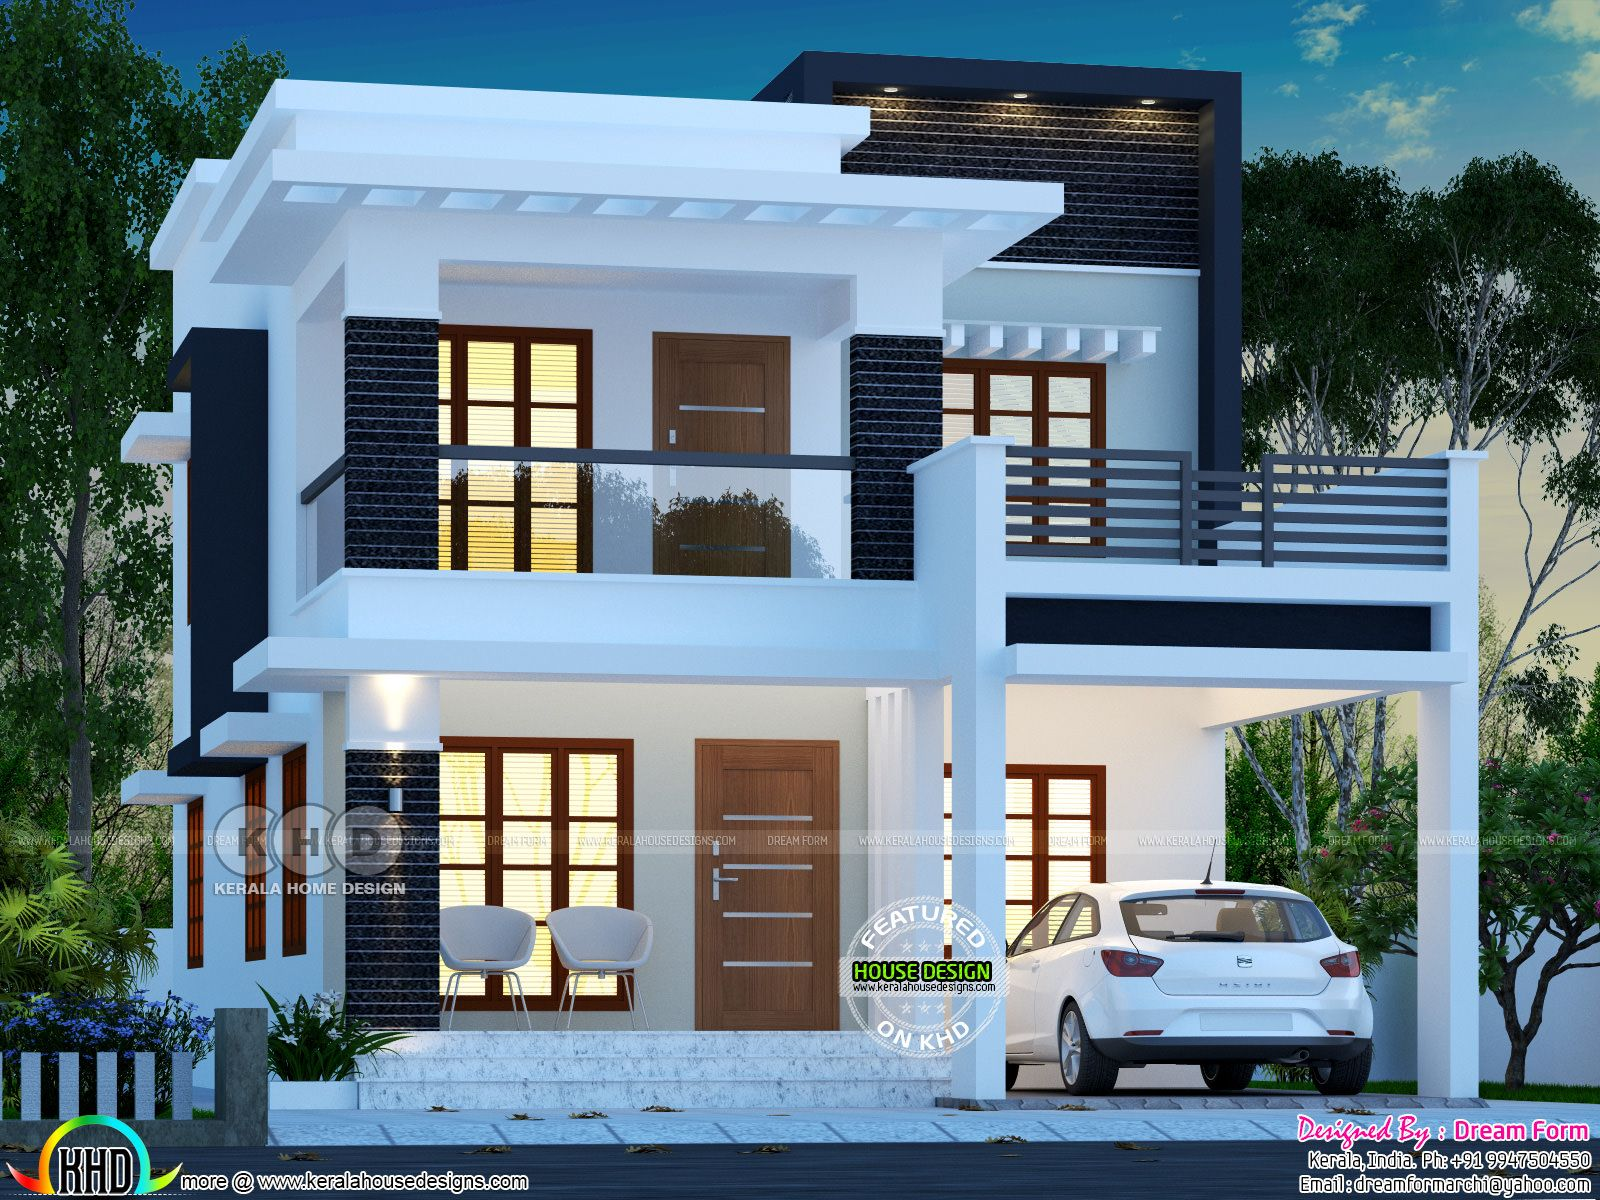 Top 11 Beautiful Small House Design With Floor Plans And Estimated Cost Small House Design Beautiful Small Homes House Design